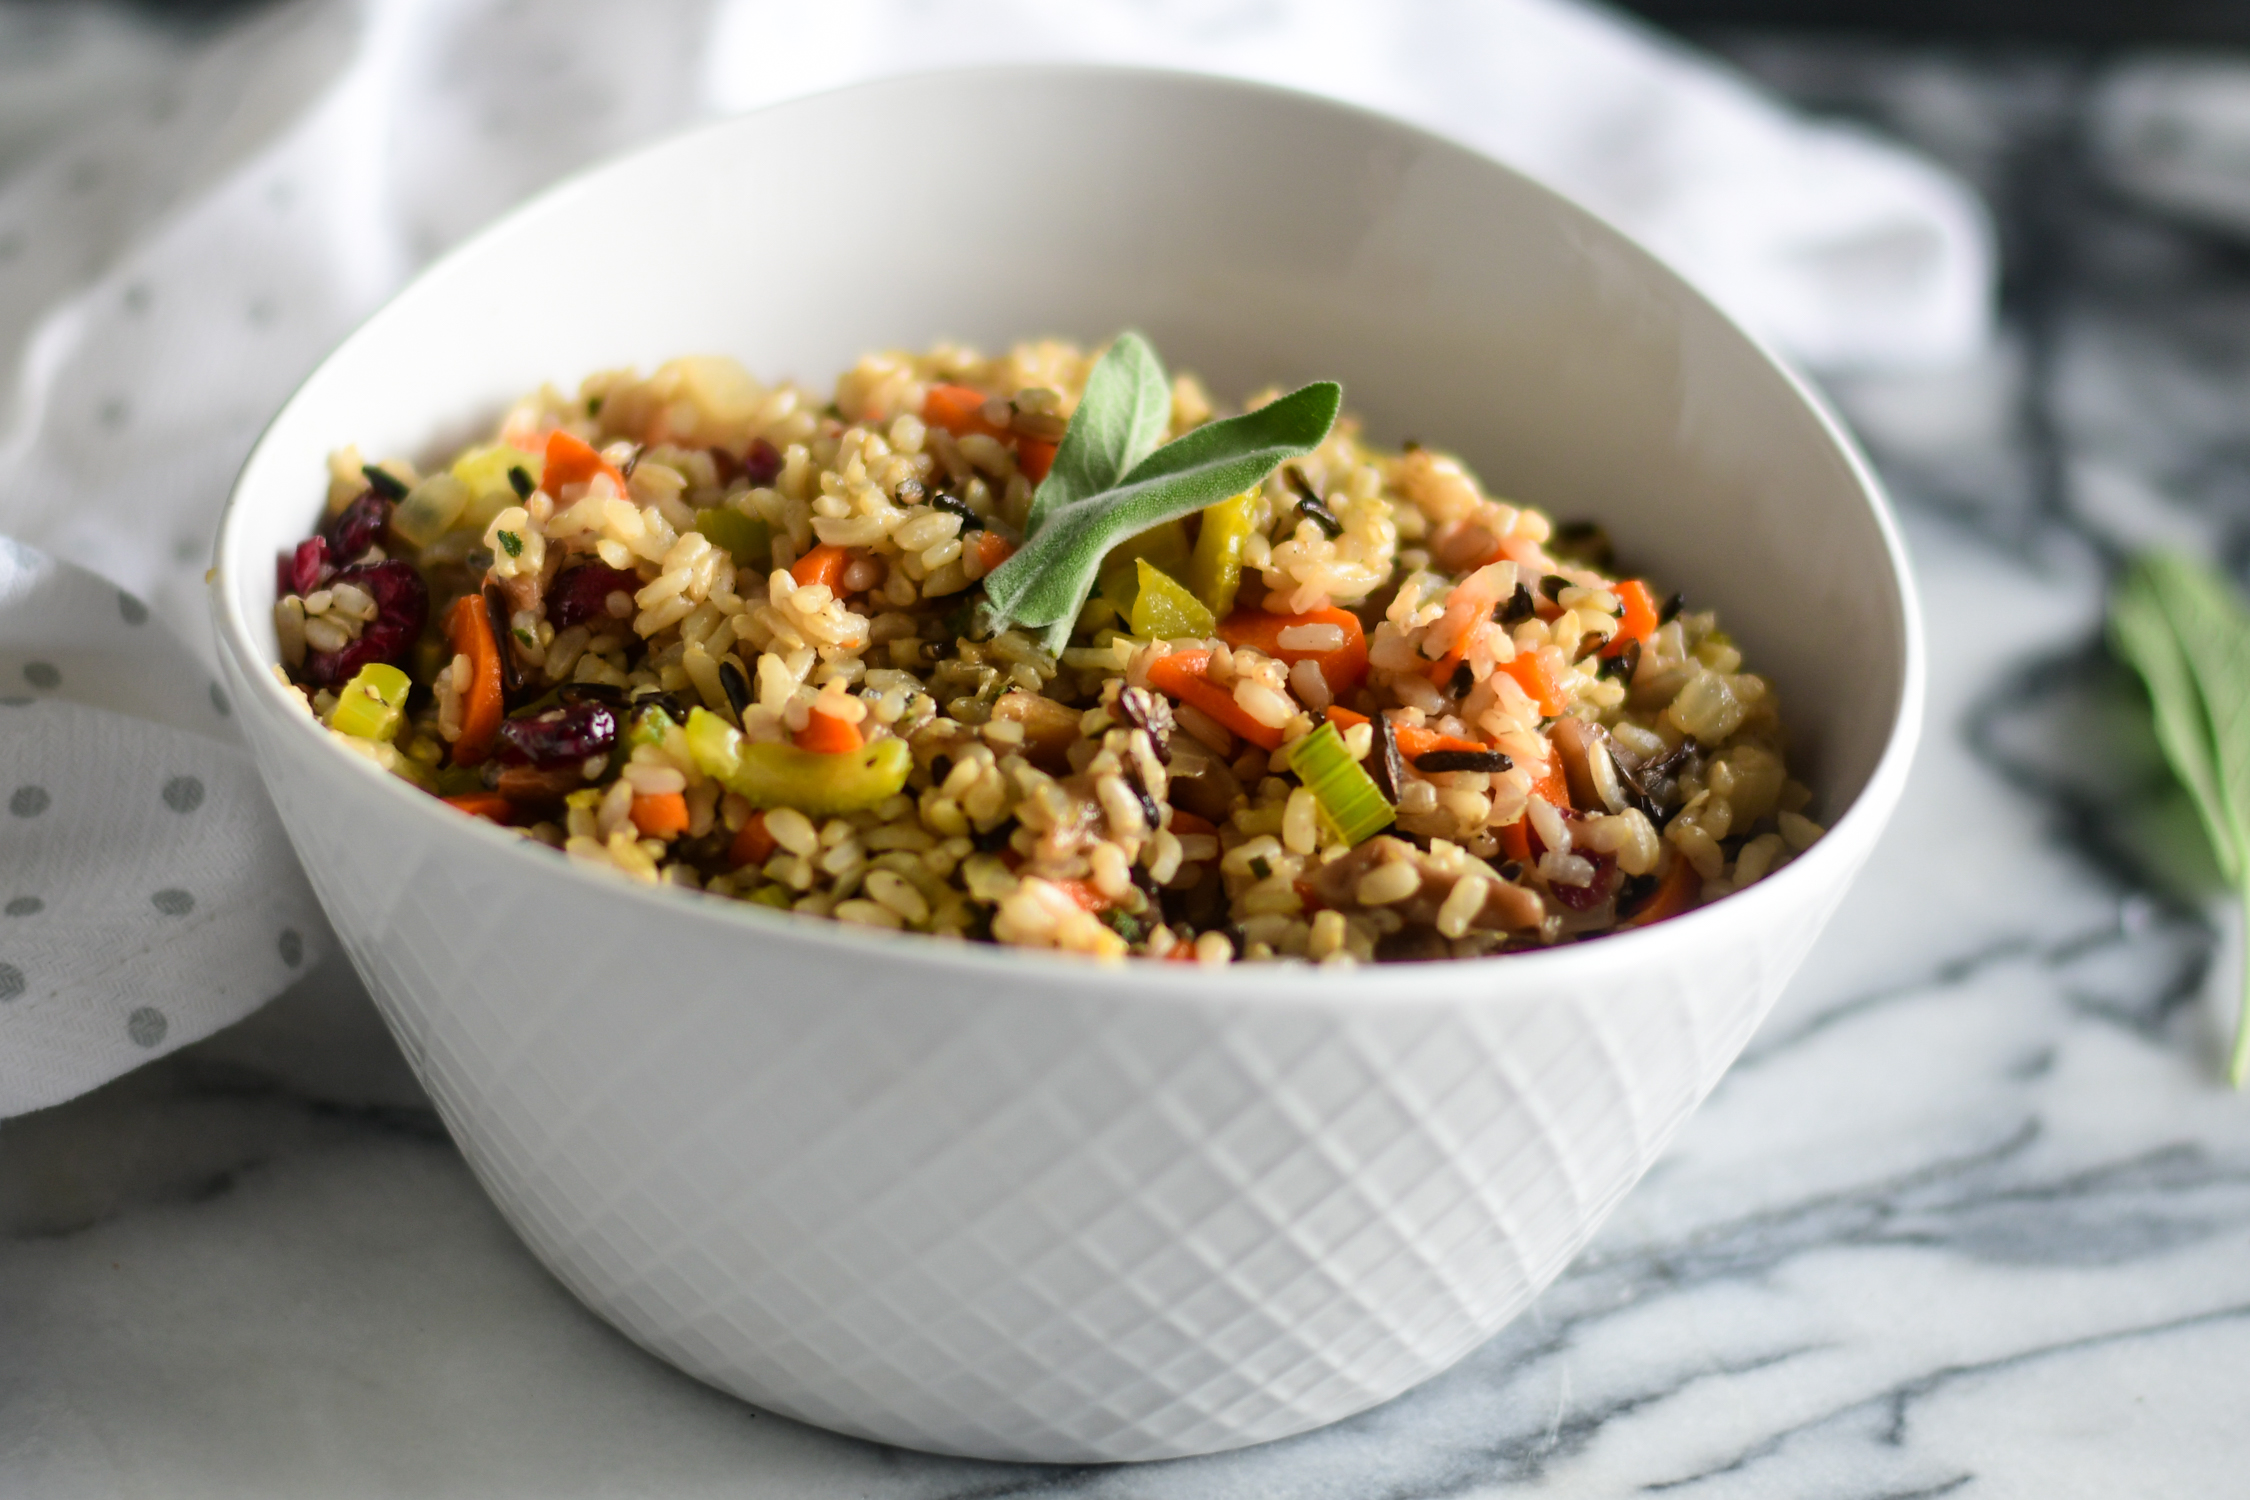 ThisBrown and Wild Rice Chestnut Stuffing is the perfect side dish to your holiday meal. It is so easy to make and can be made ahead of time!